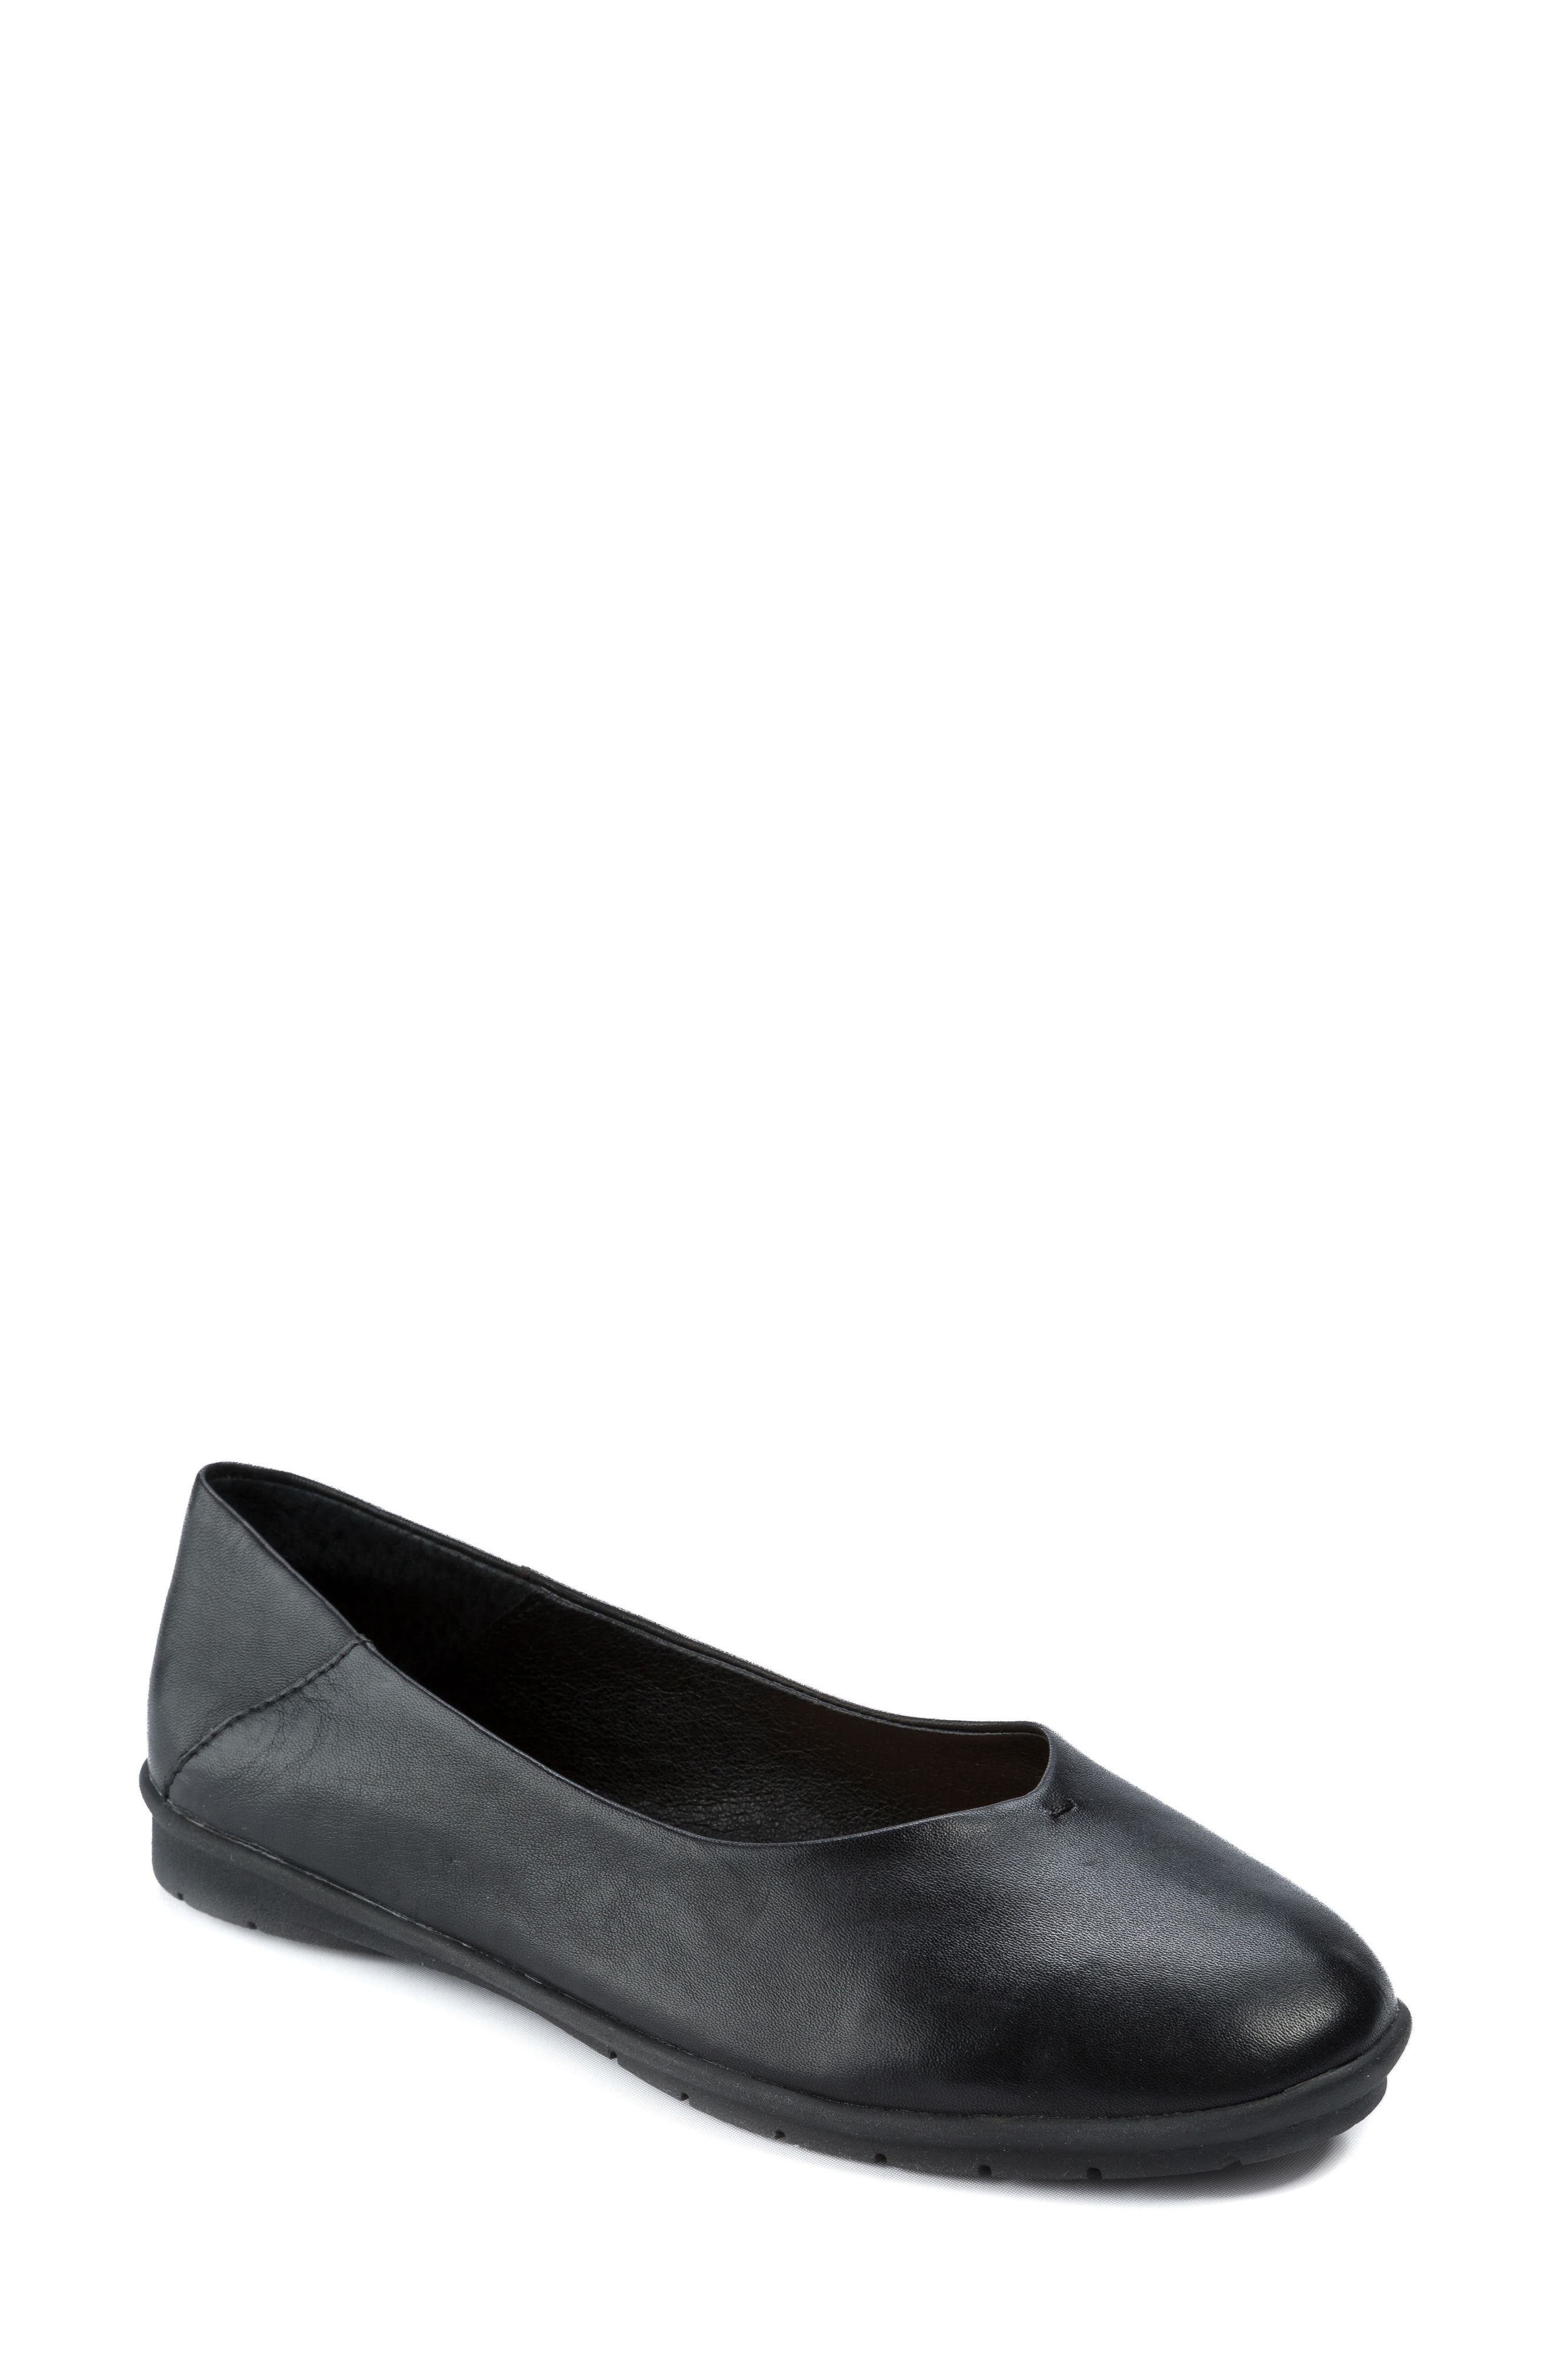 Natalia Flat,                         Main,                         color, Black Leather